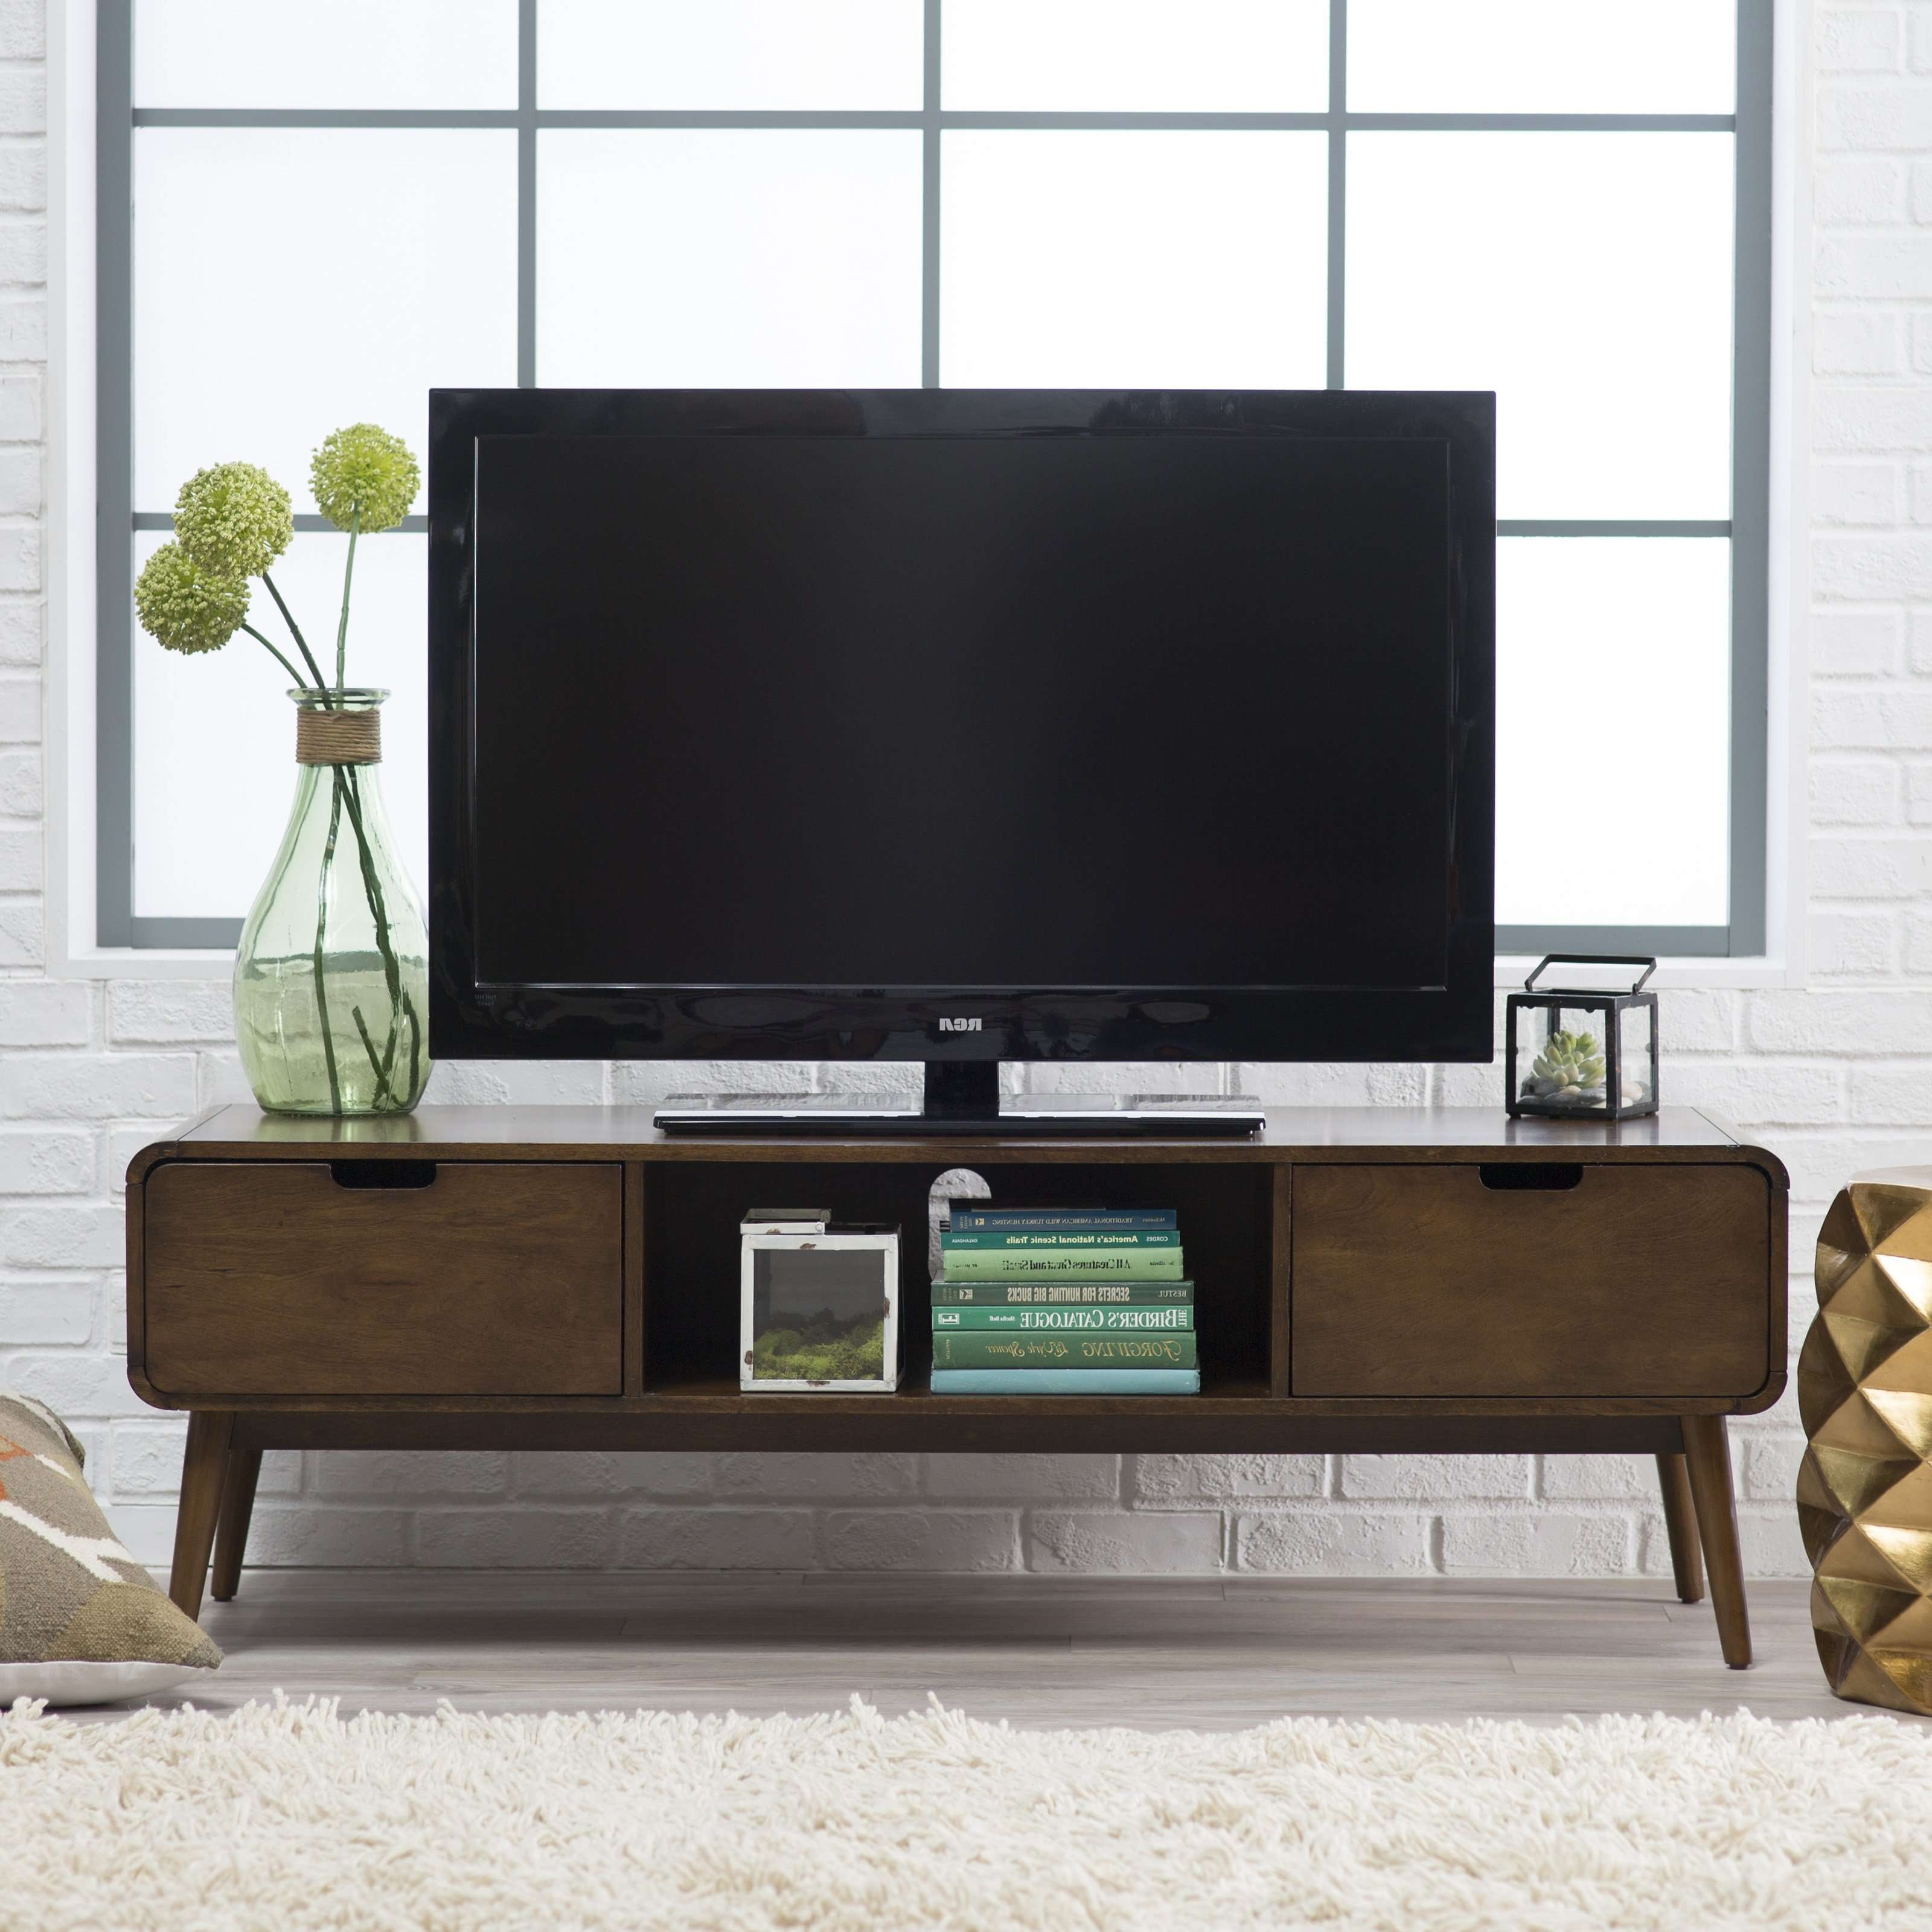 Belham Living Carter Mid Century Modern Tv Stand | Hayneedle Throughout Low Profile Contemporary Tv Stands (View 2 of 15)